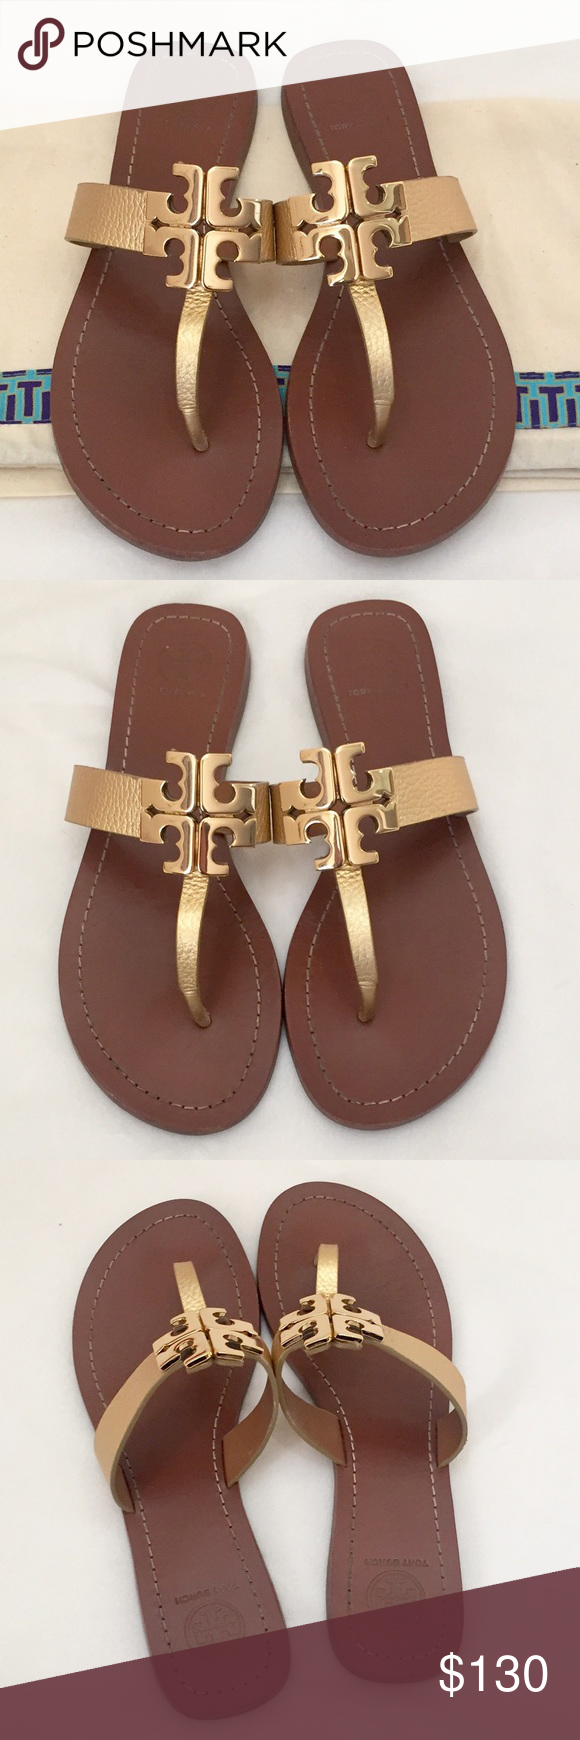 bfdfe26e45b Tory Burch Moore Sandals Tory Burch Moore 2 Sandals. Absolutely gorgeous  Metallic gold leather sandals